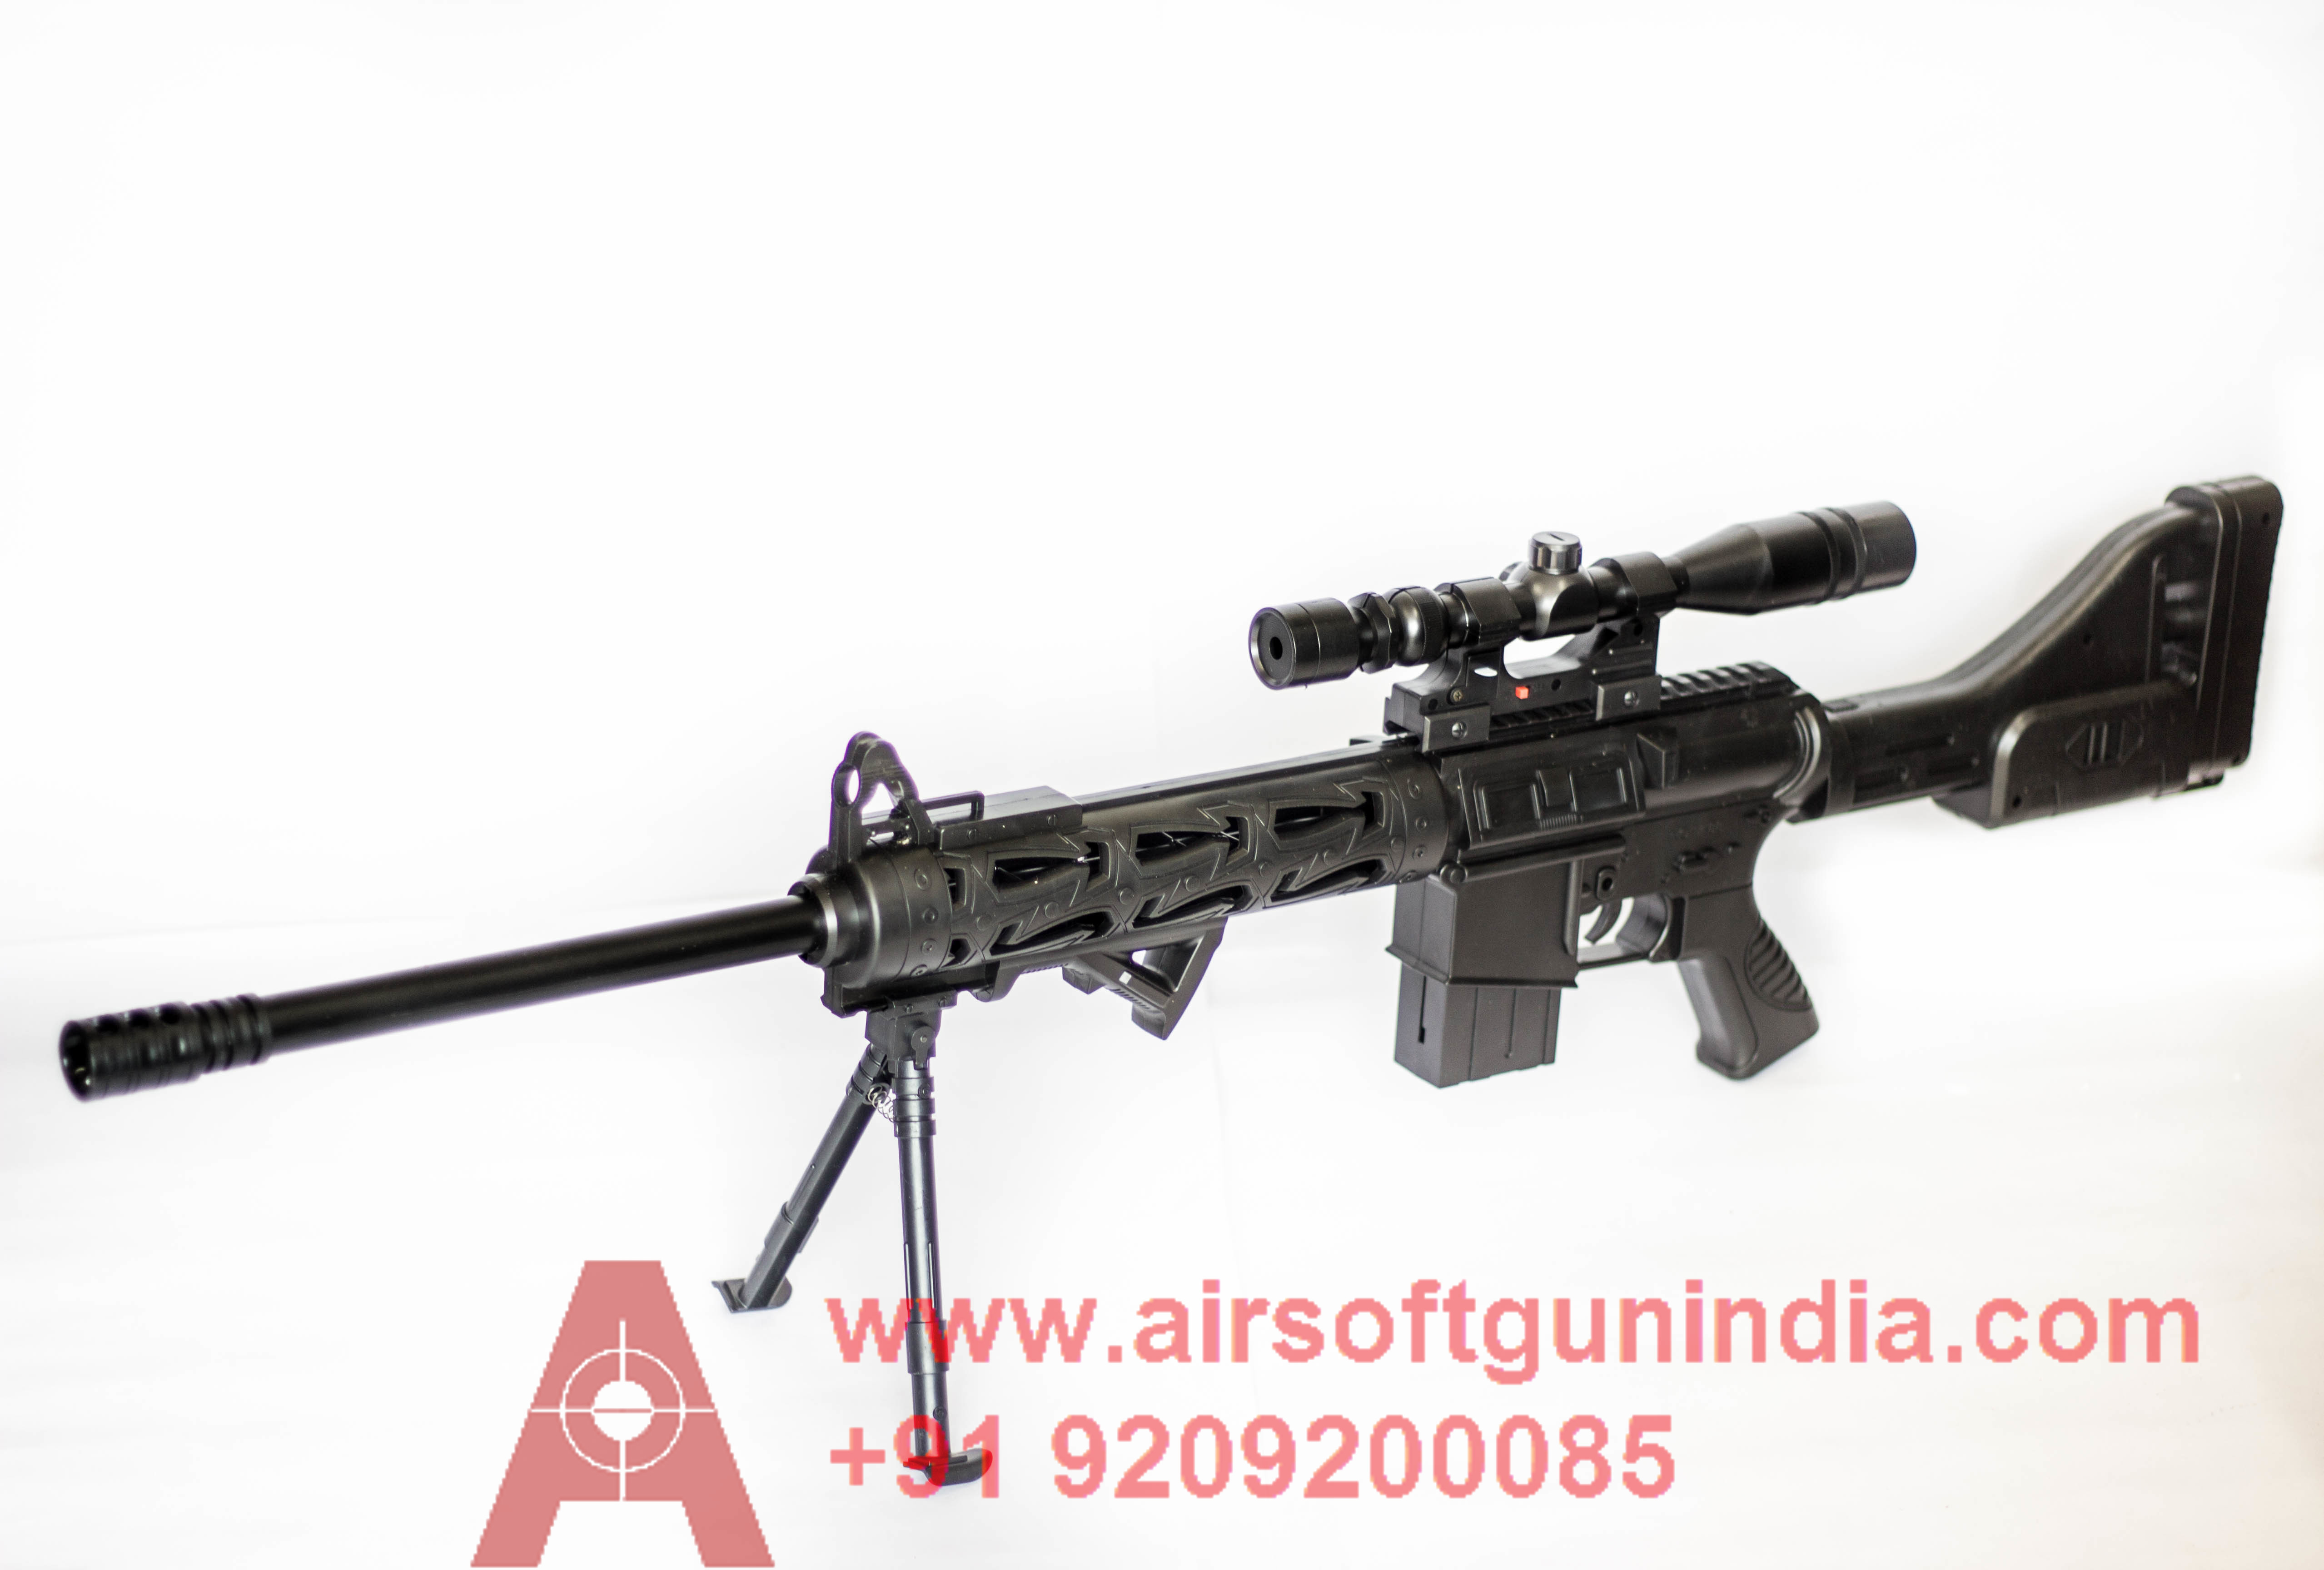 M88 Assualt Rifle By Airsoft Gun India